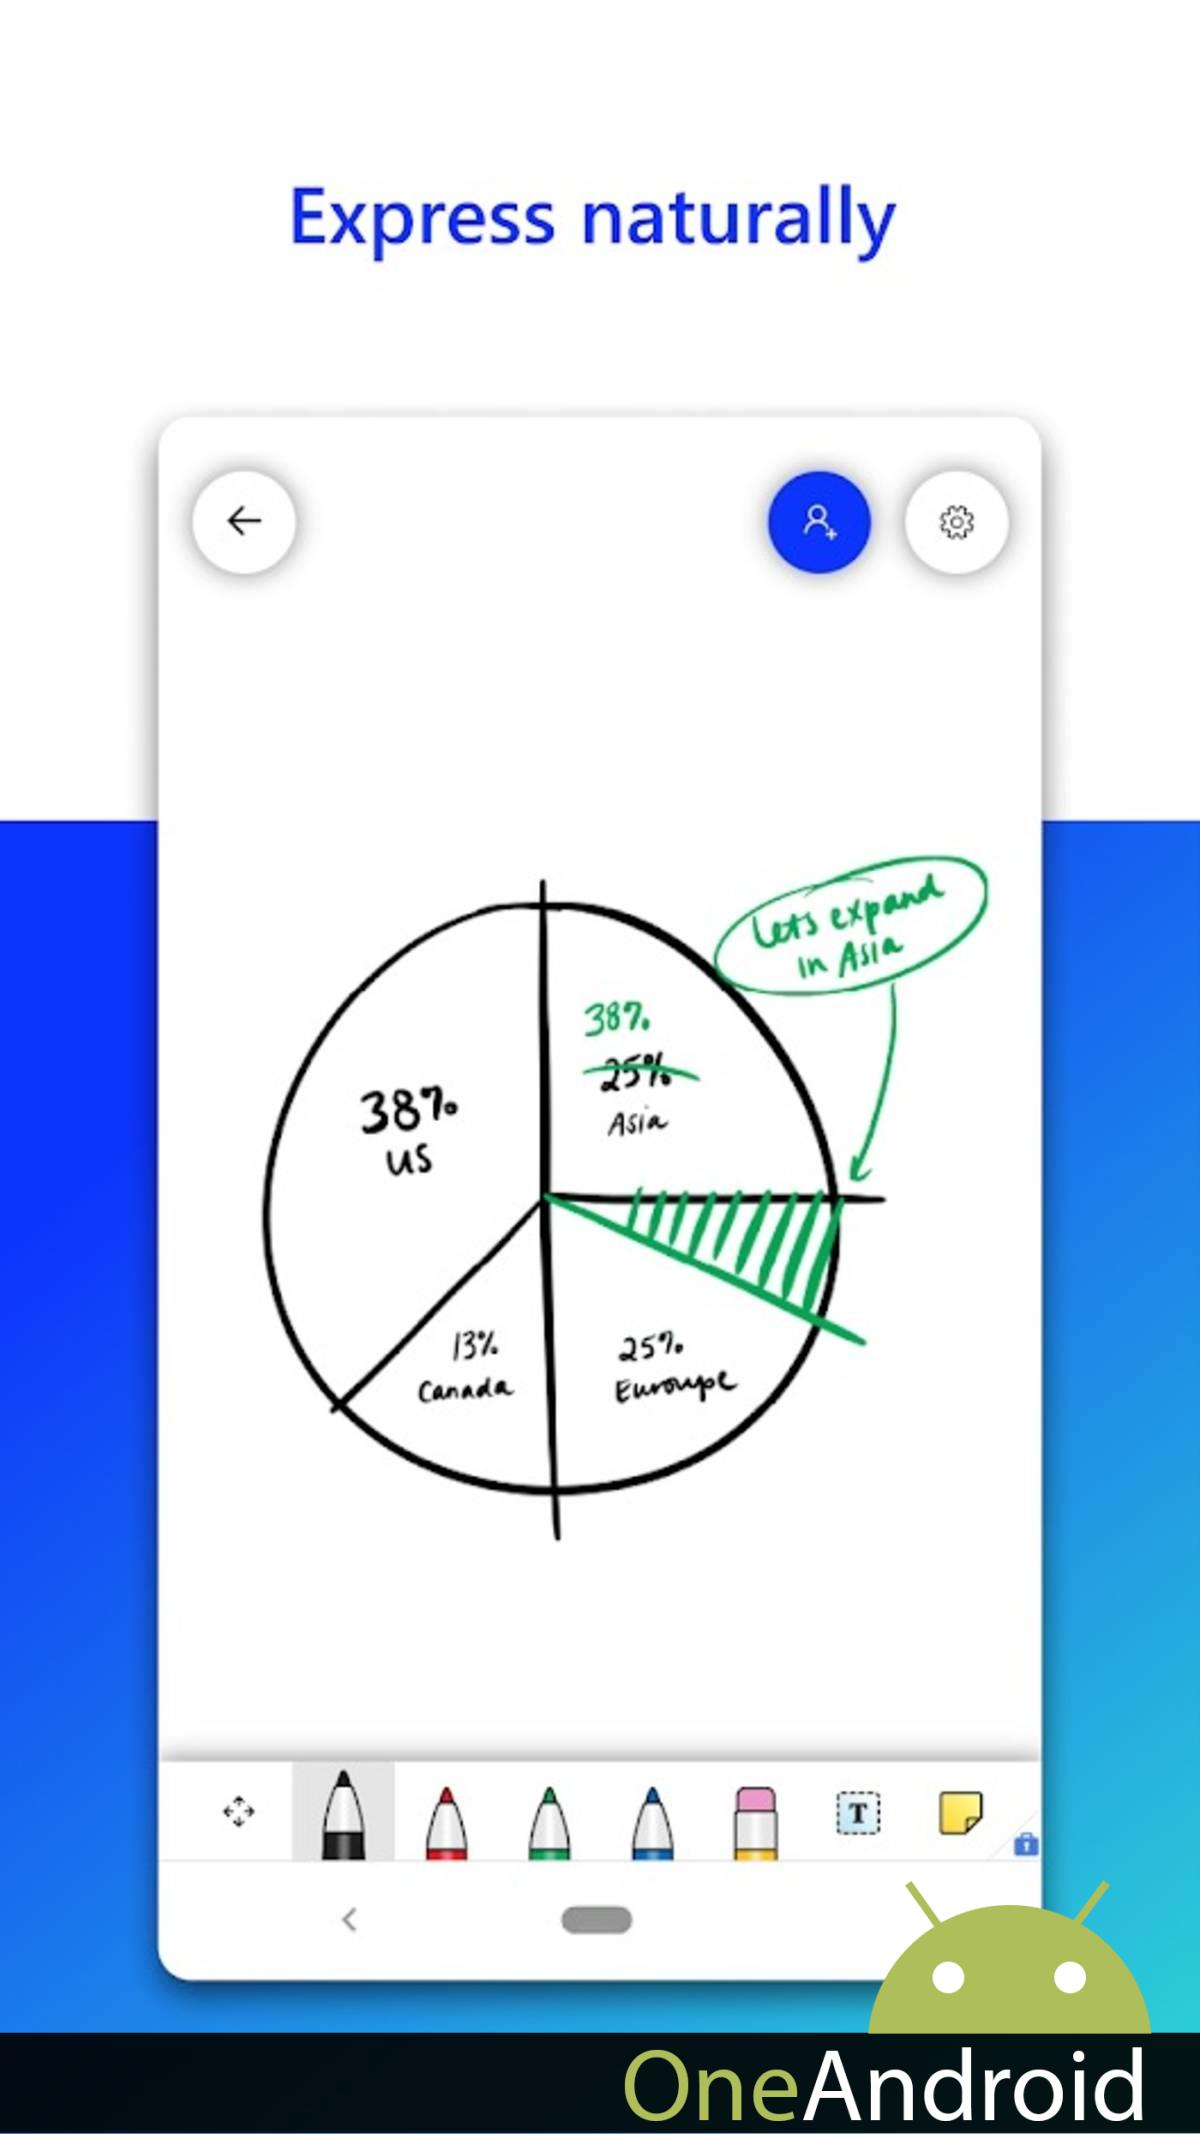 Microsoft's whiteboard app just arrived on Android: organize your ideas